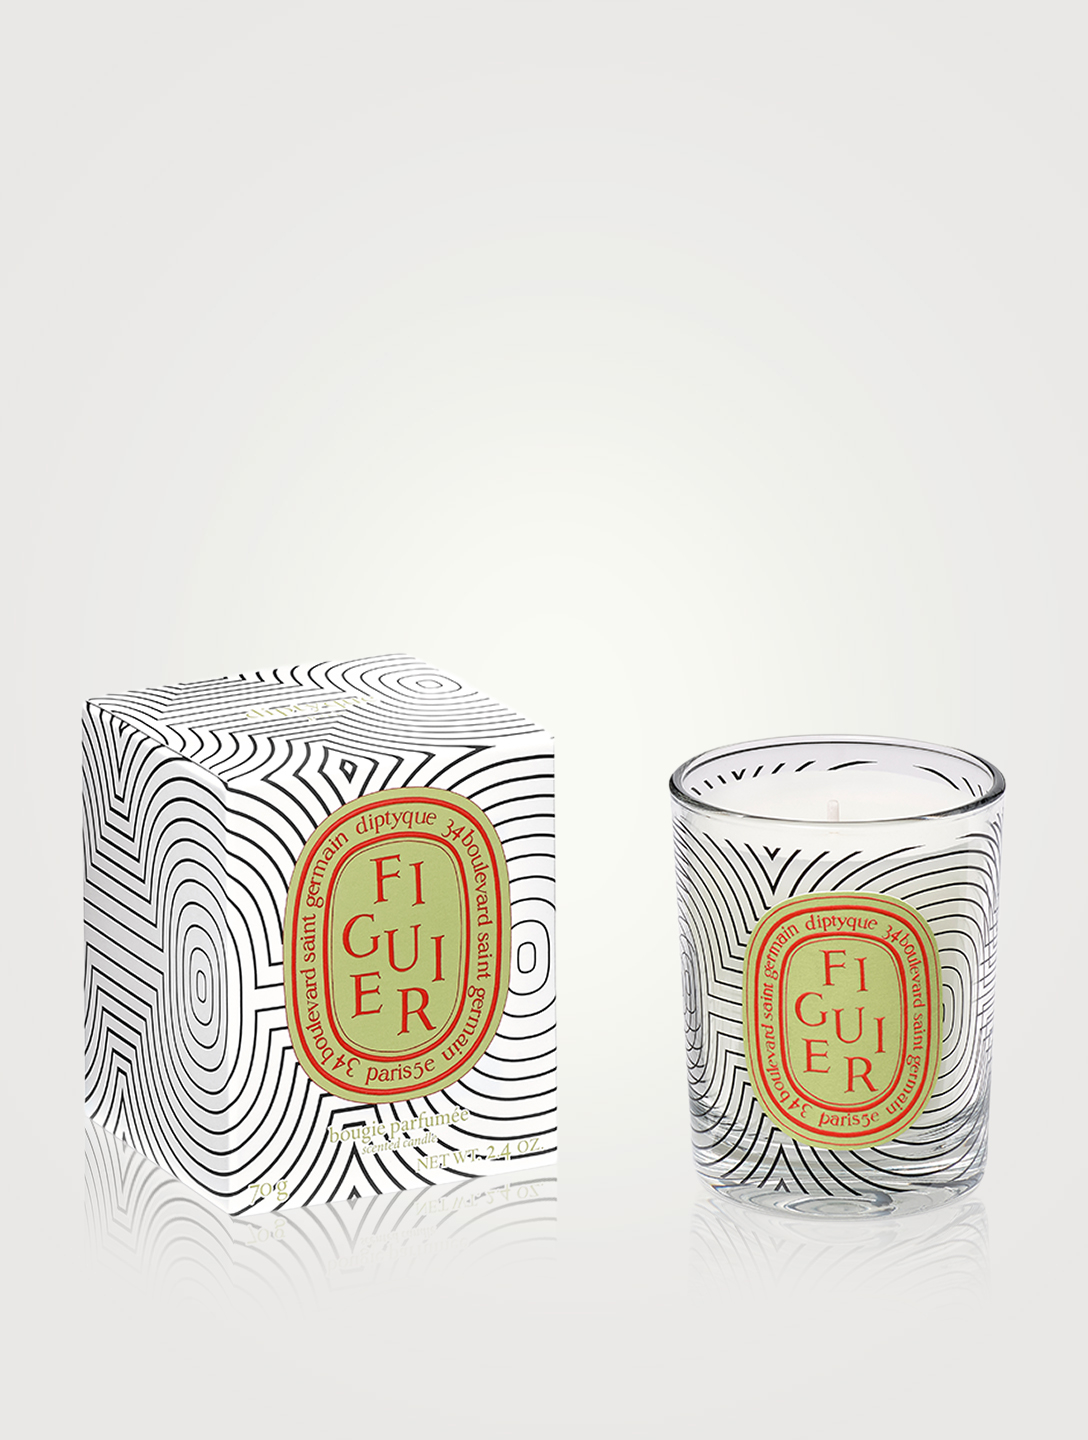 DIPTYQUE Figuier Dancing Ovals Candle - Limited Edition Beauty